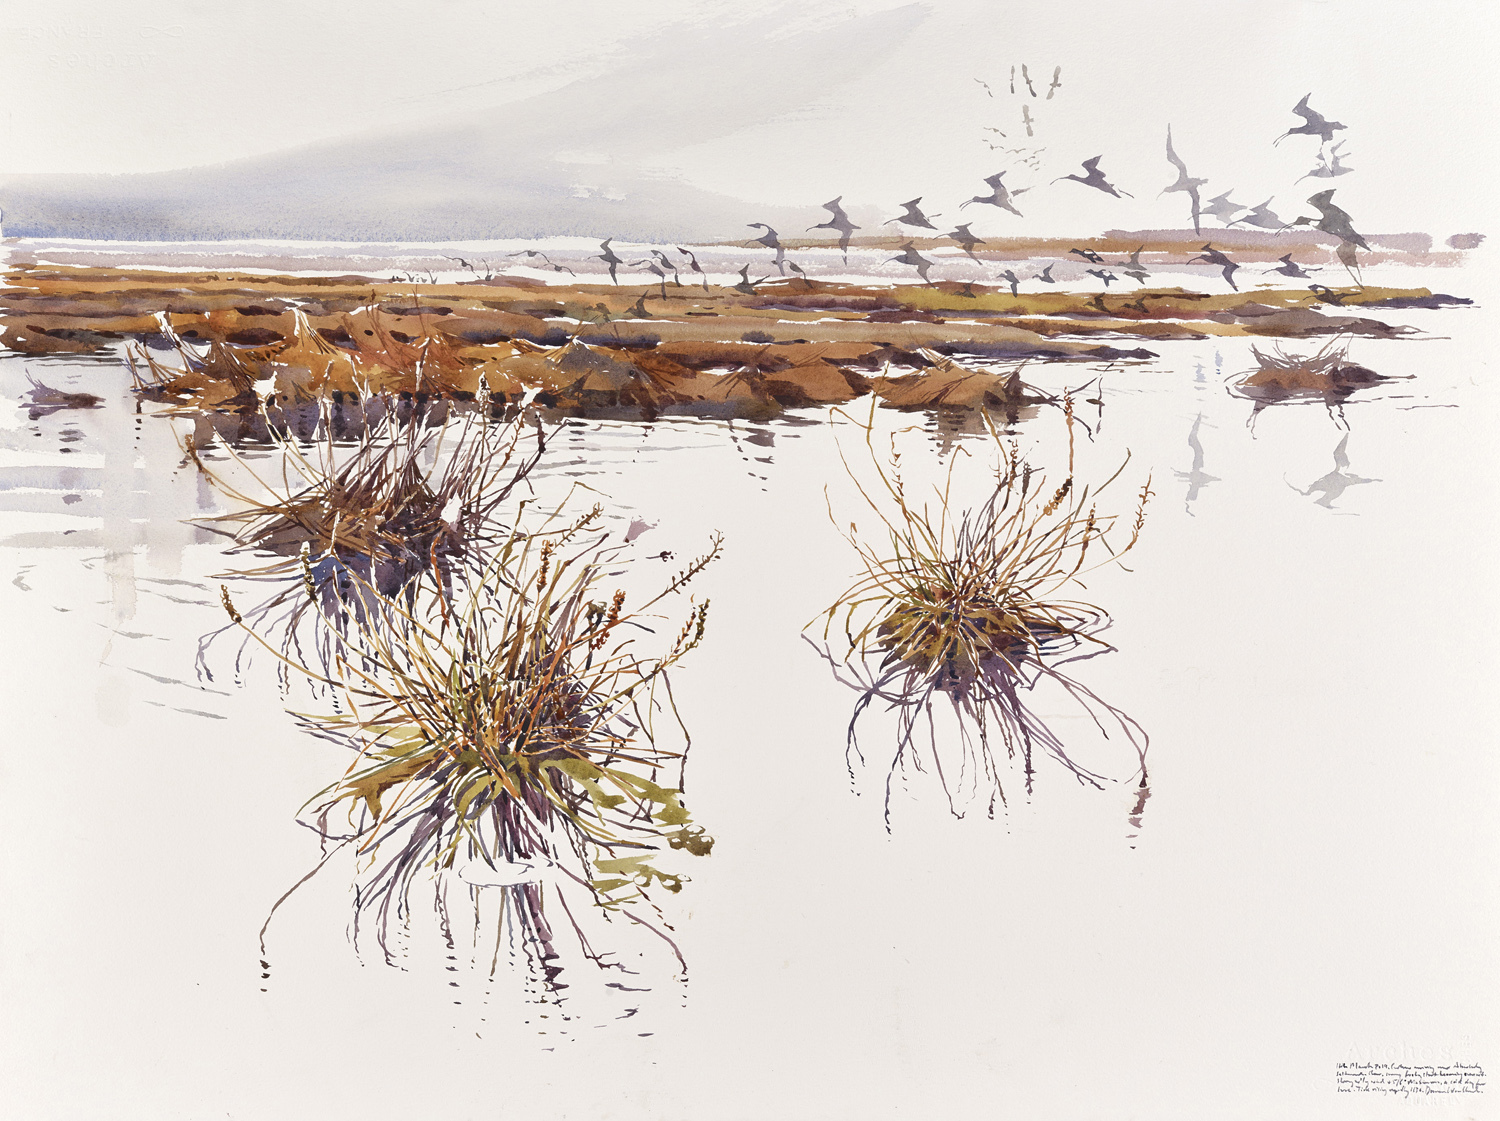 Curlew arrival over flooded saltmarsh by Darren Woodhead